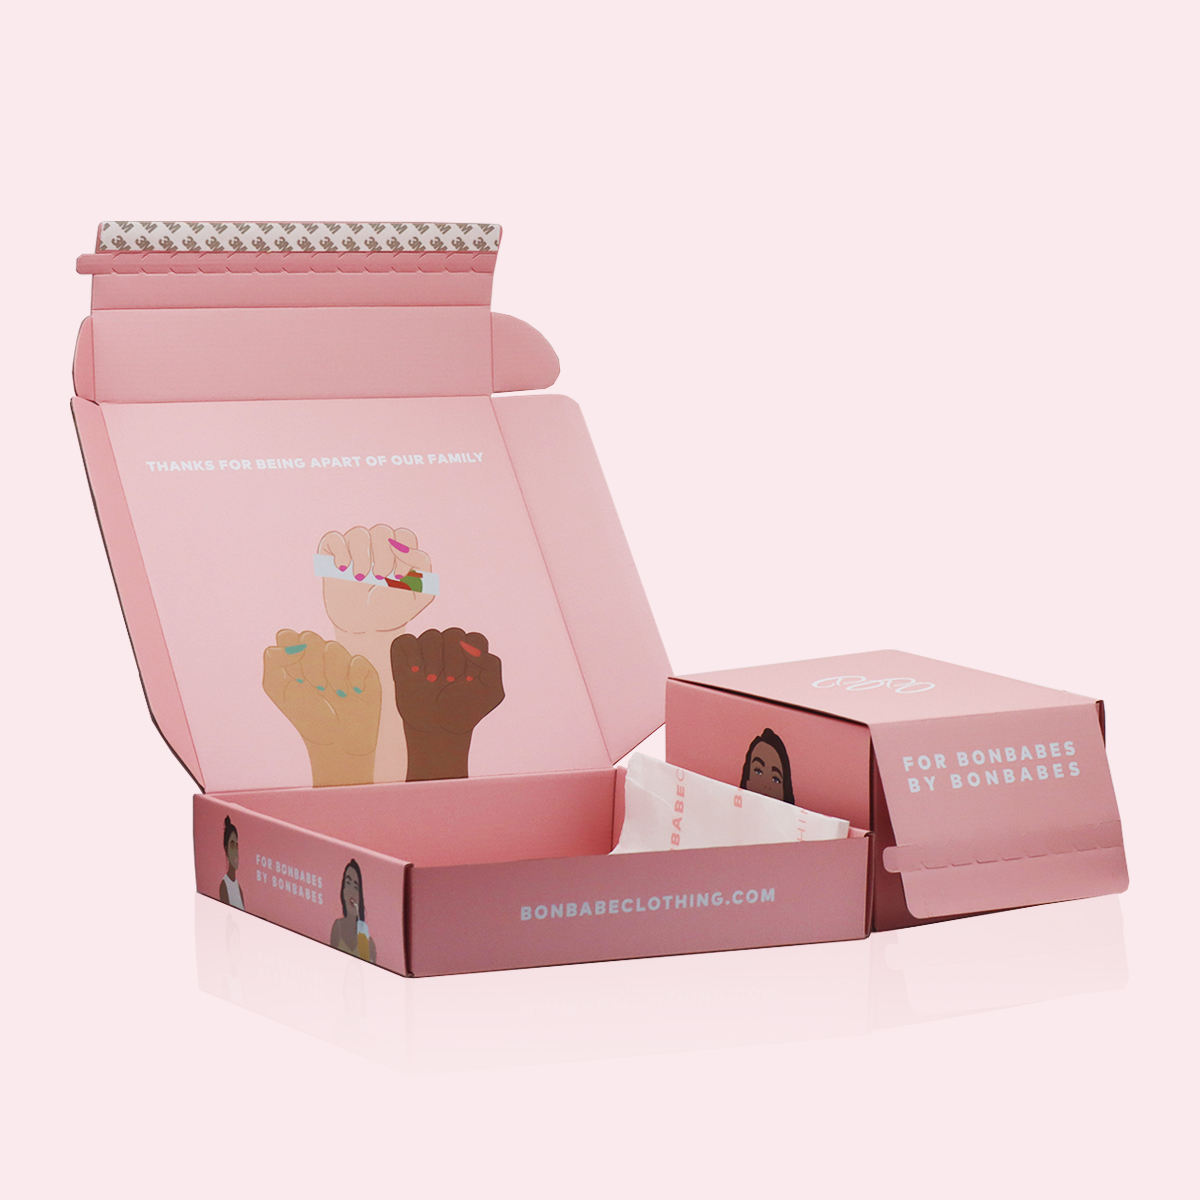 Clothing boxes custom brand colored printed corrugated mailer shipping box packaging pink